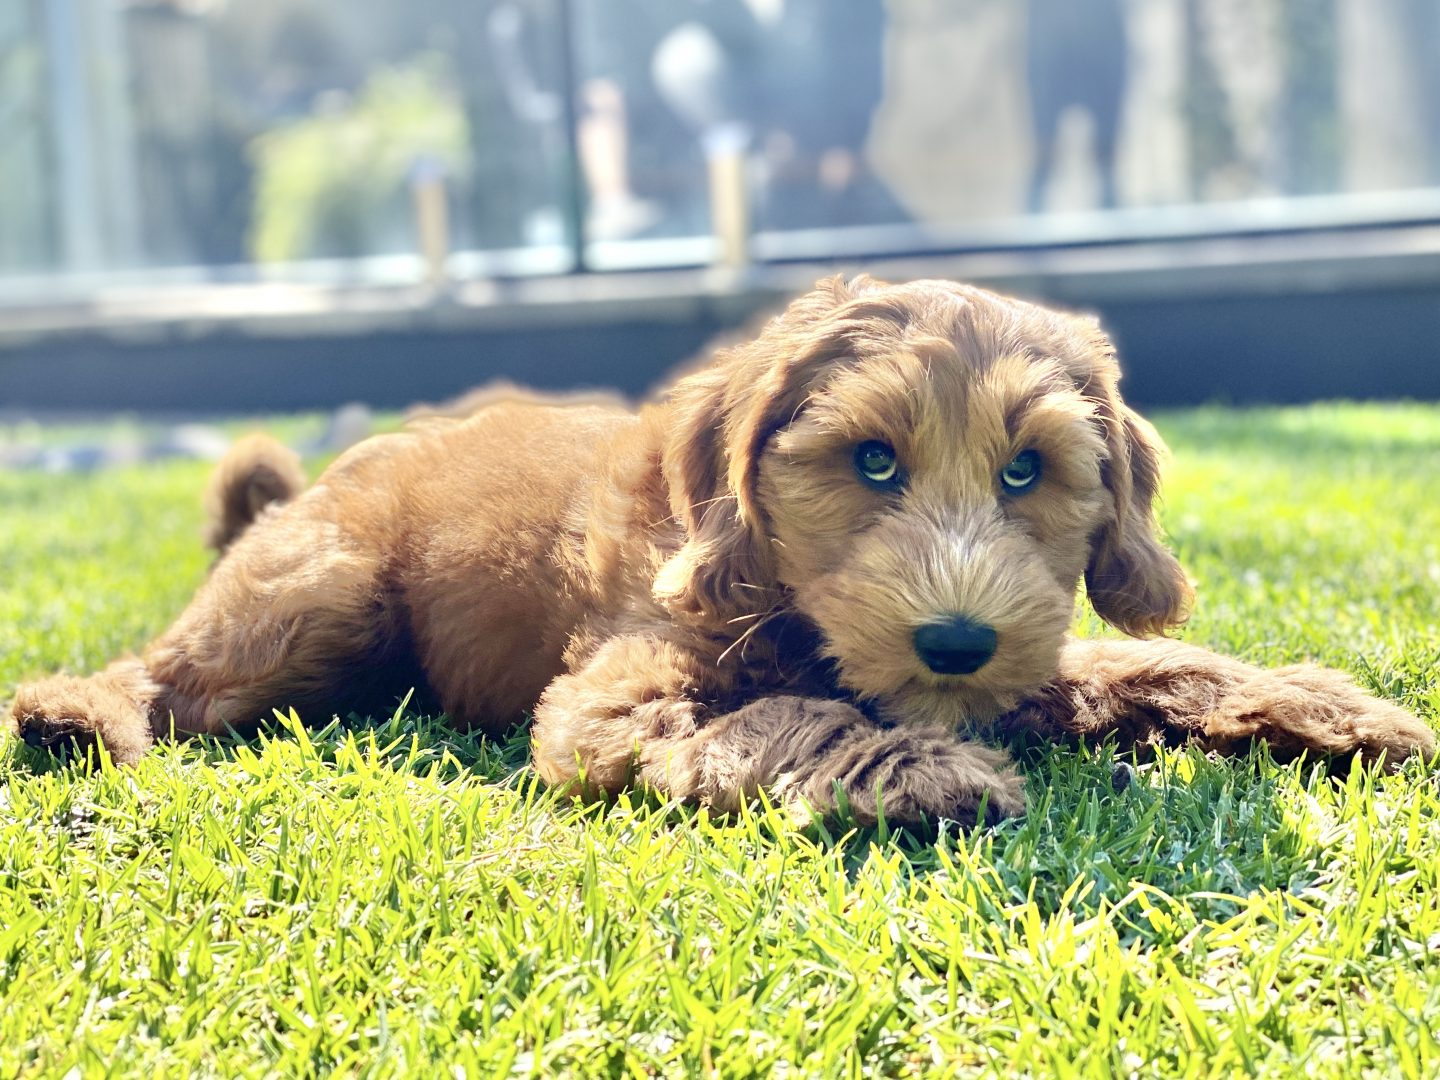 dog trainer, training with tamara ,dog training, puppy training, online dog training, dog walking, dog walker adelaide, trick training for dogs, how to train puppy, best friends, best friend dog training, aussie dog